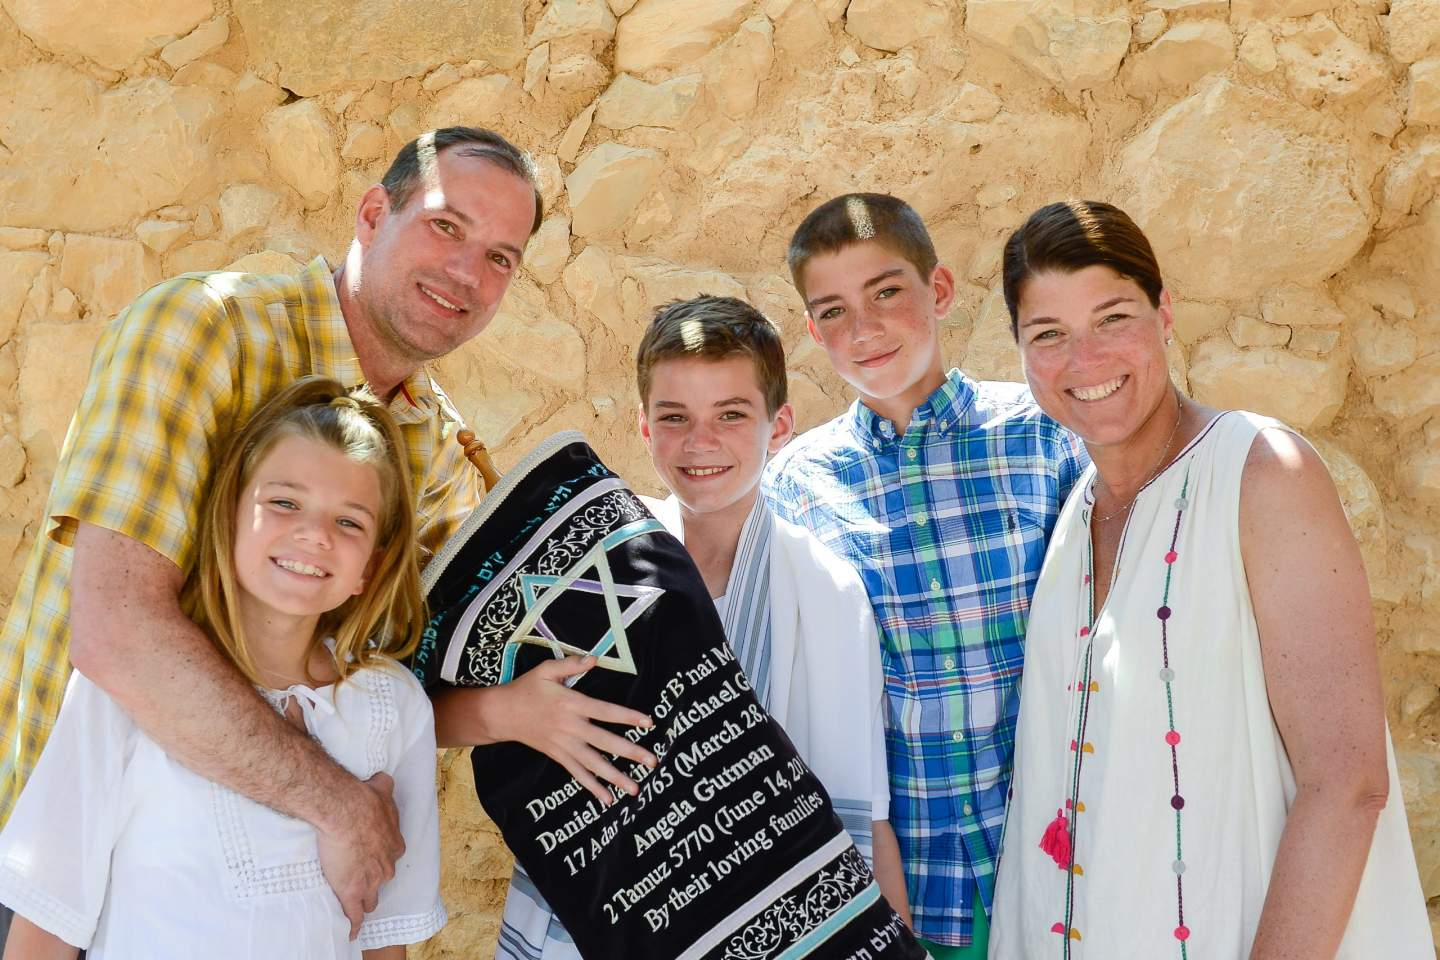 Imagine a Bar Mitzvah experience as one-of-a-kind as your Bar Mitzvah Boy!